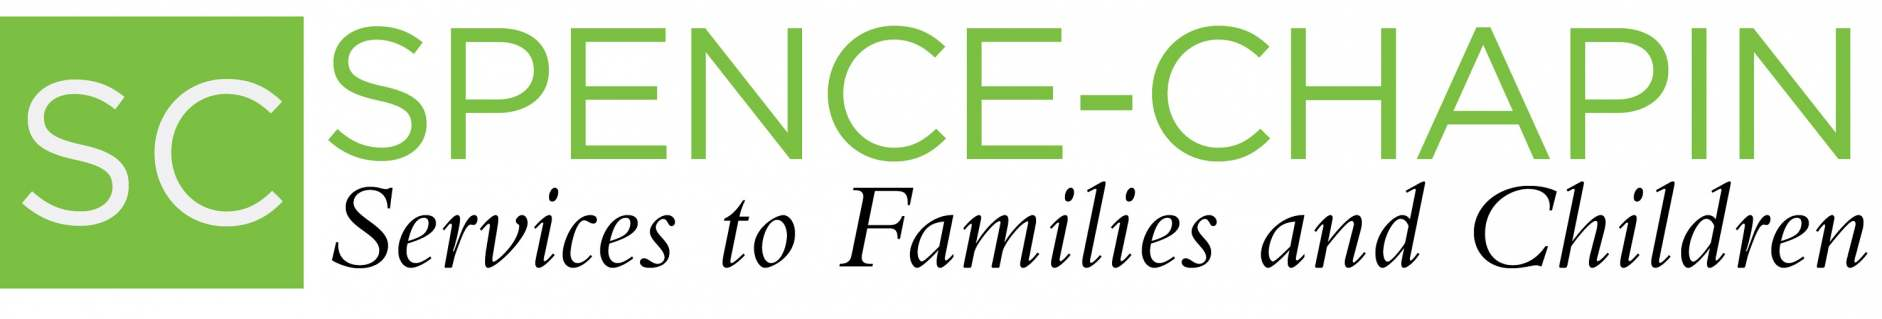 Spence-Chapin Adoption Services Logo